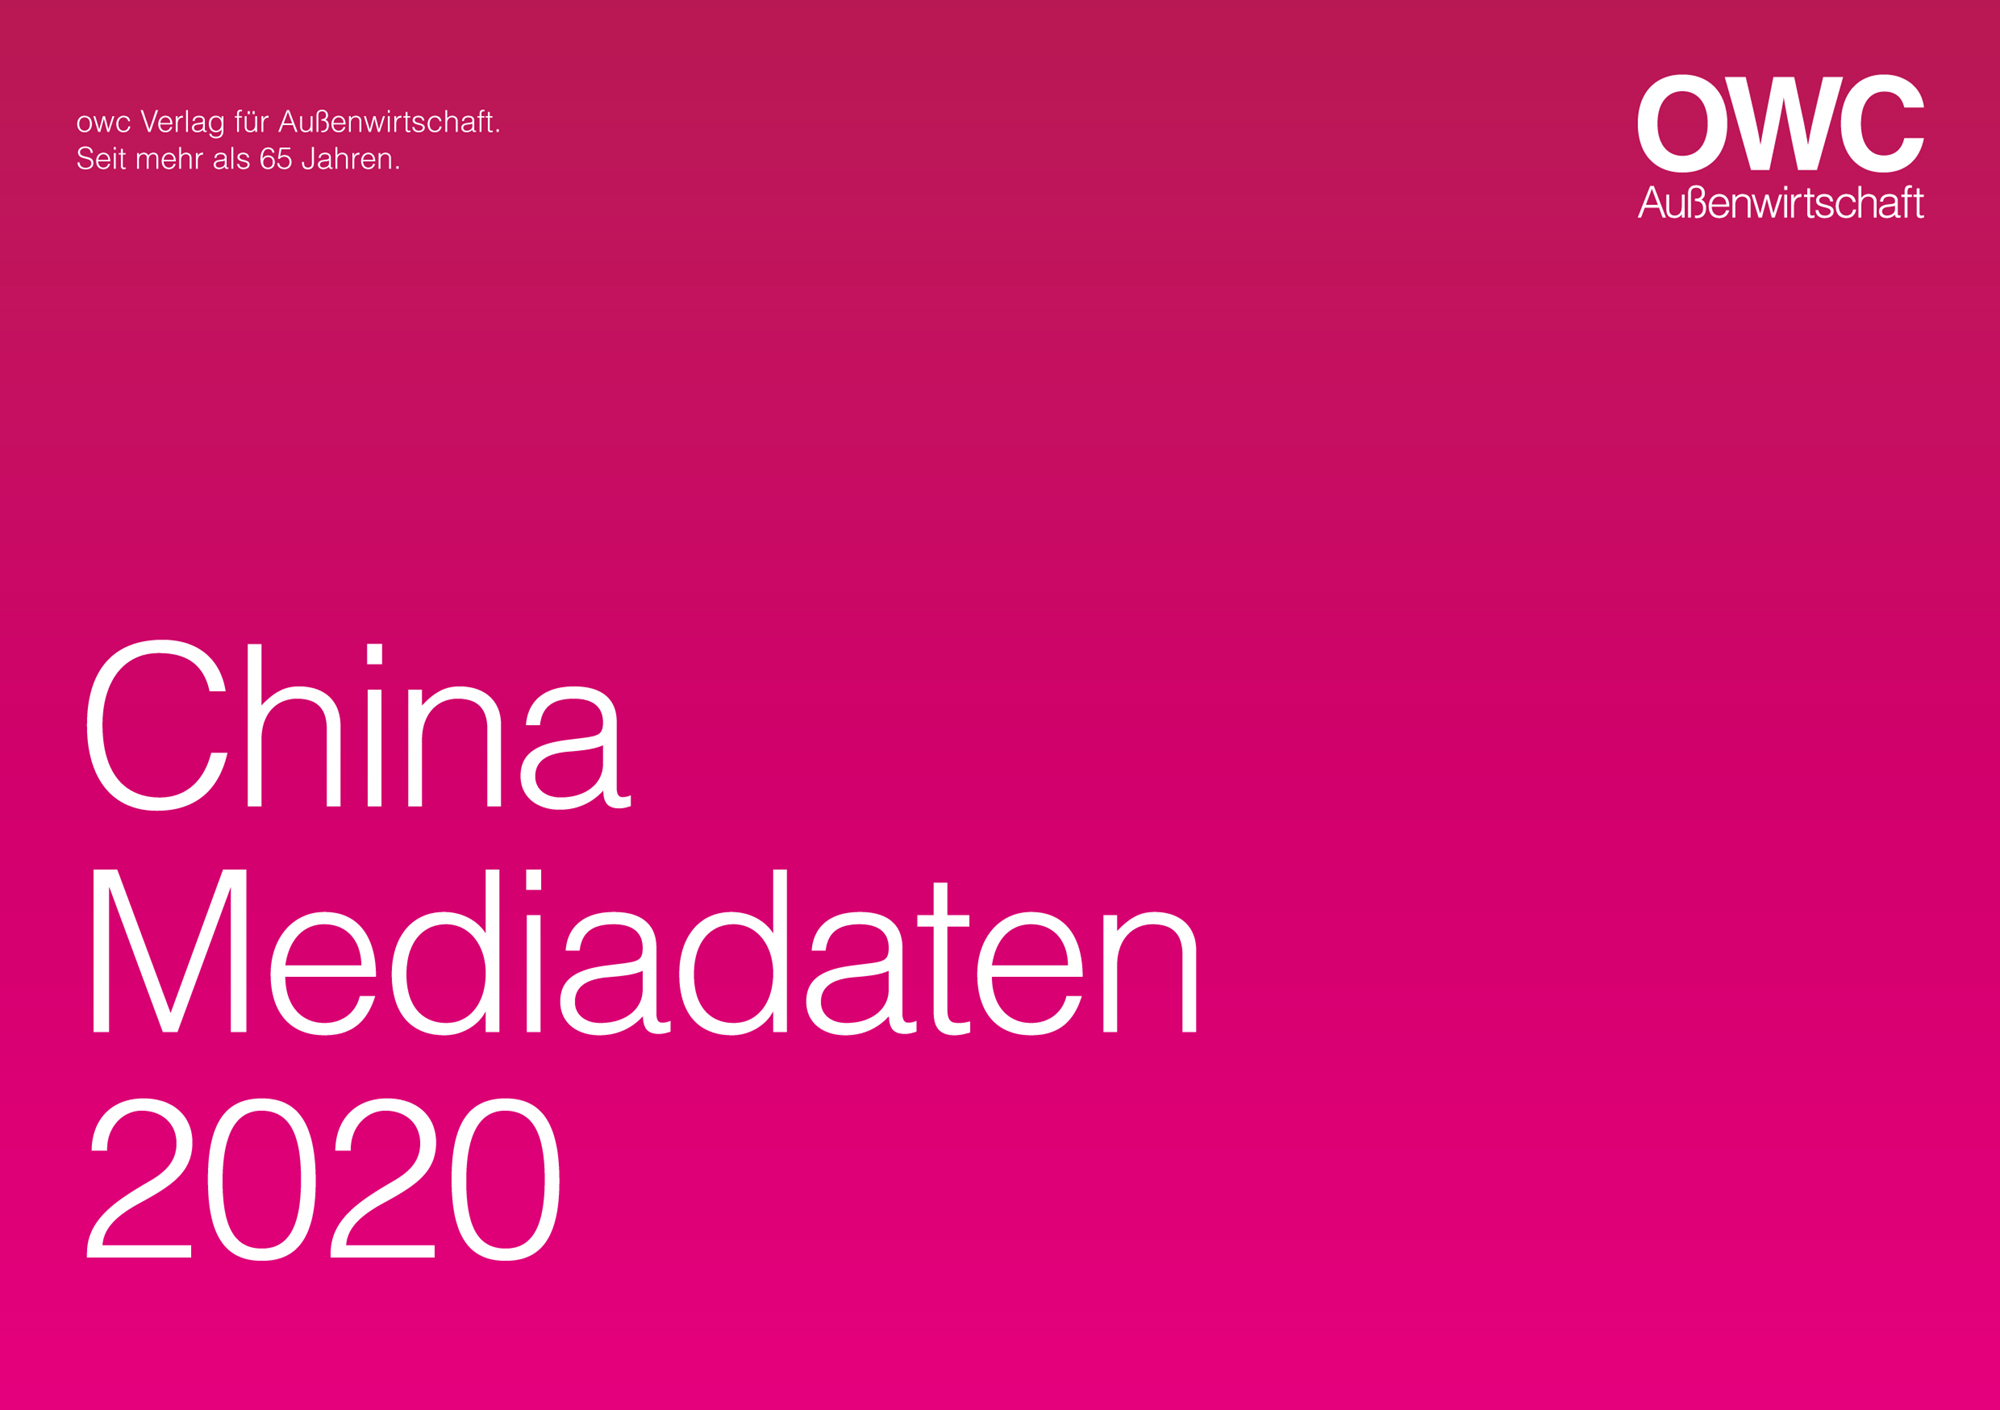 https://owc.de/wp-content/uploads/2020/04/chi2020.jpg